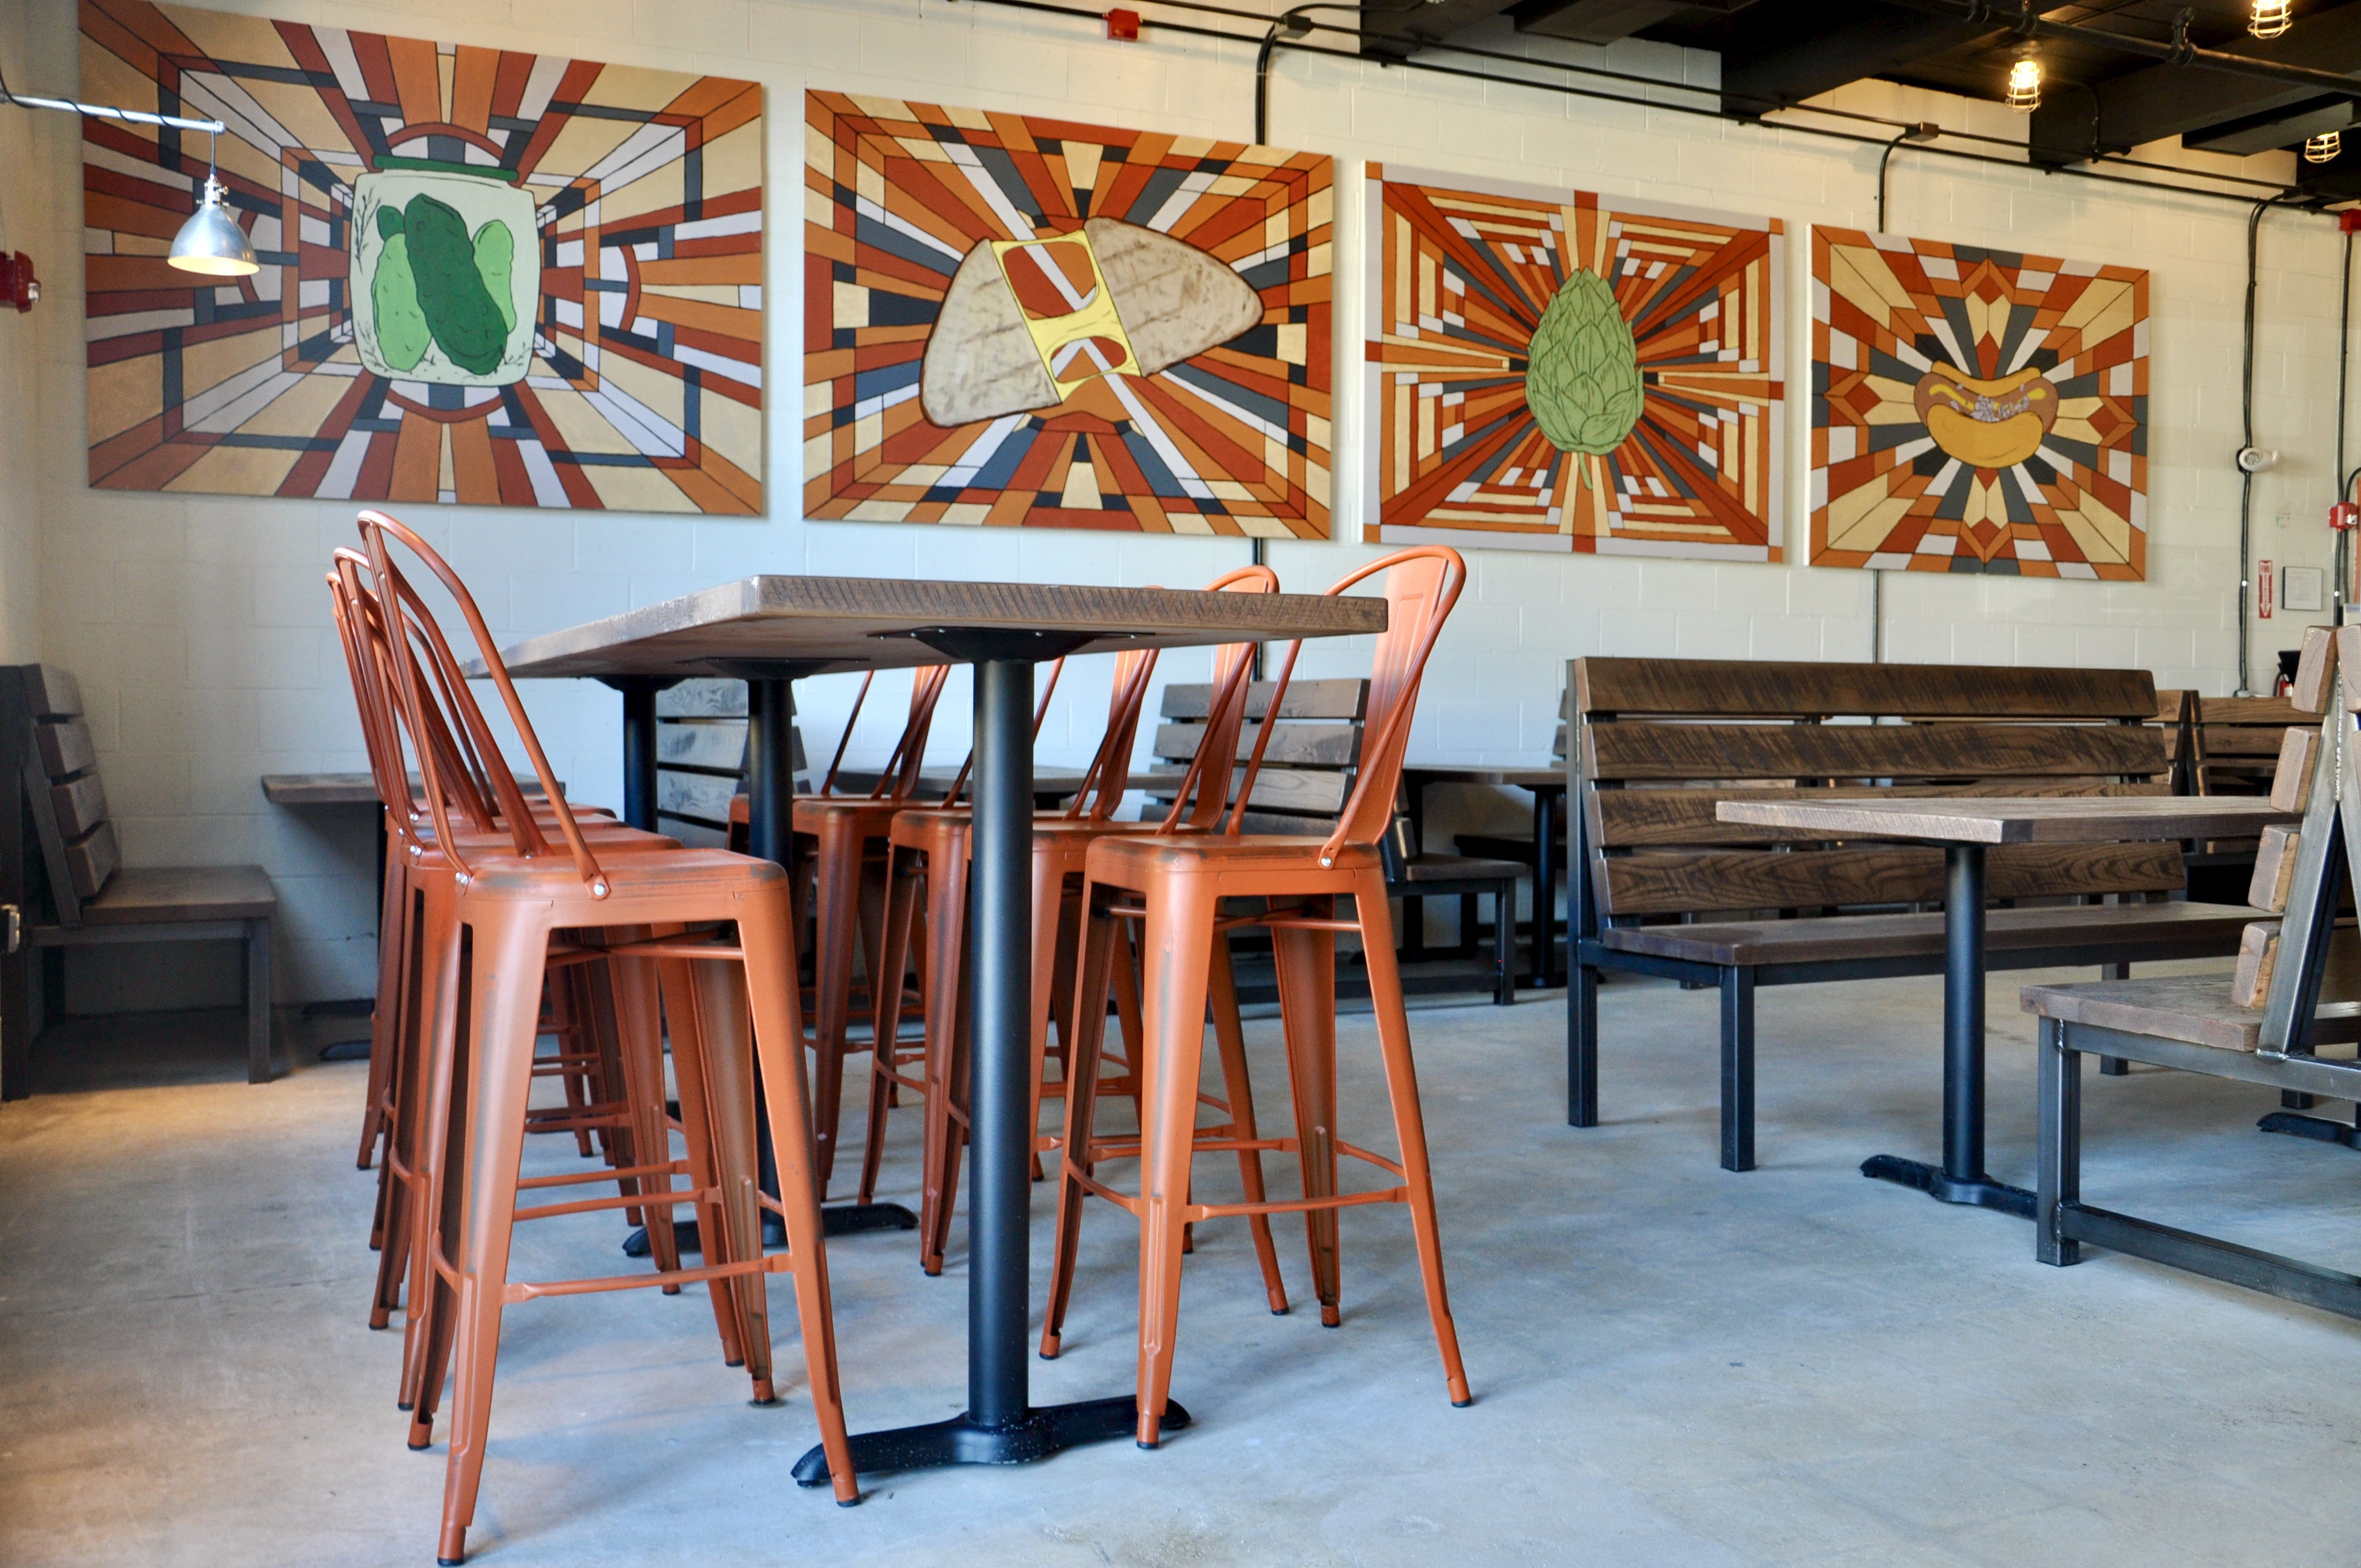 Four paintings overhang wooden booth seating inside a beer hall